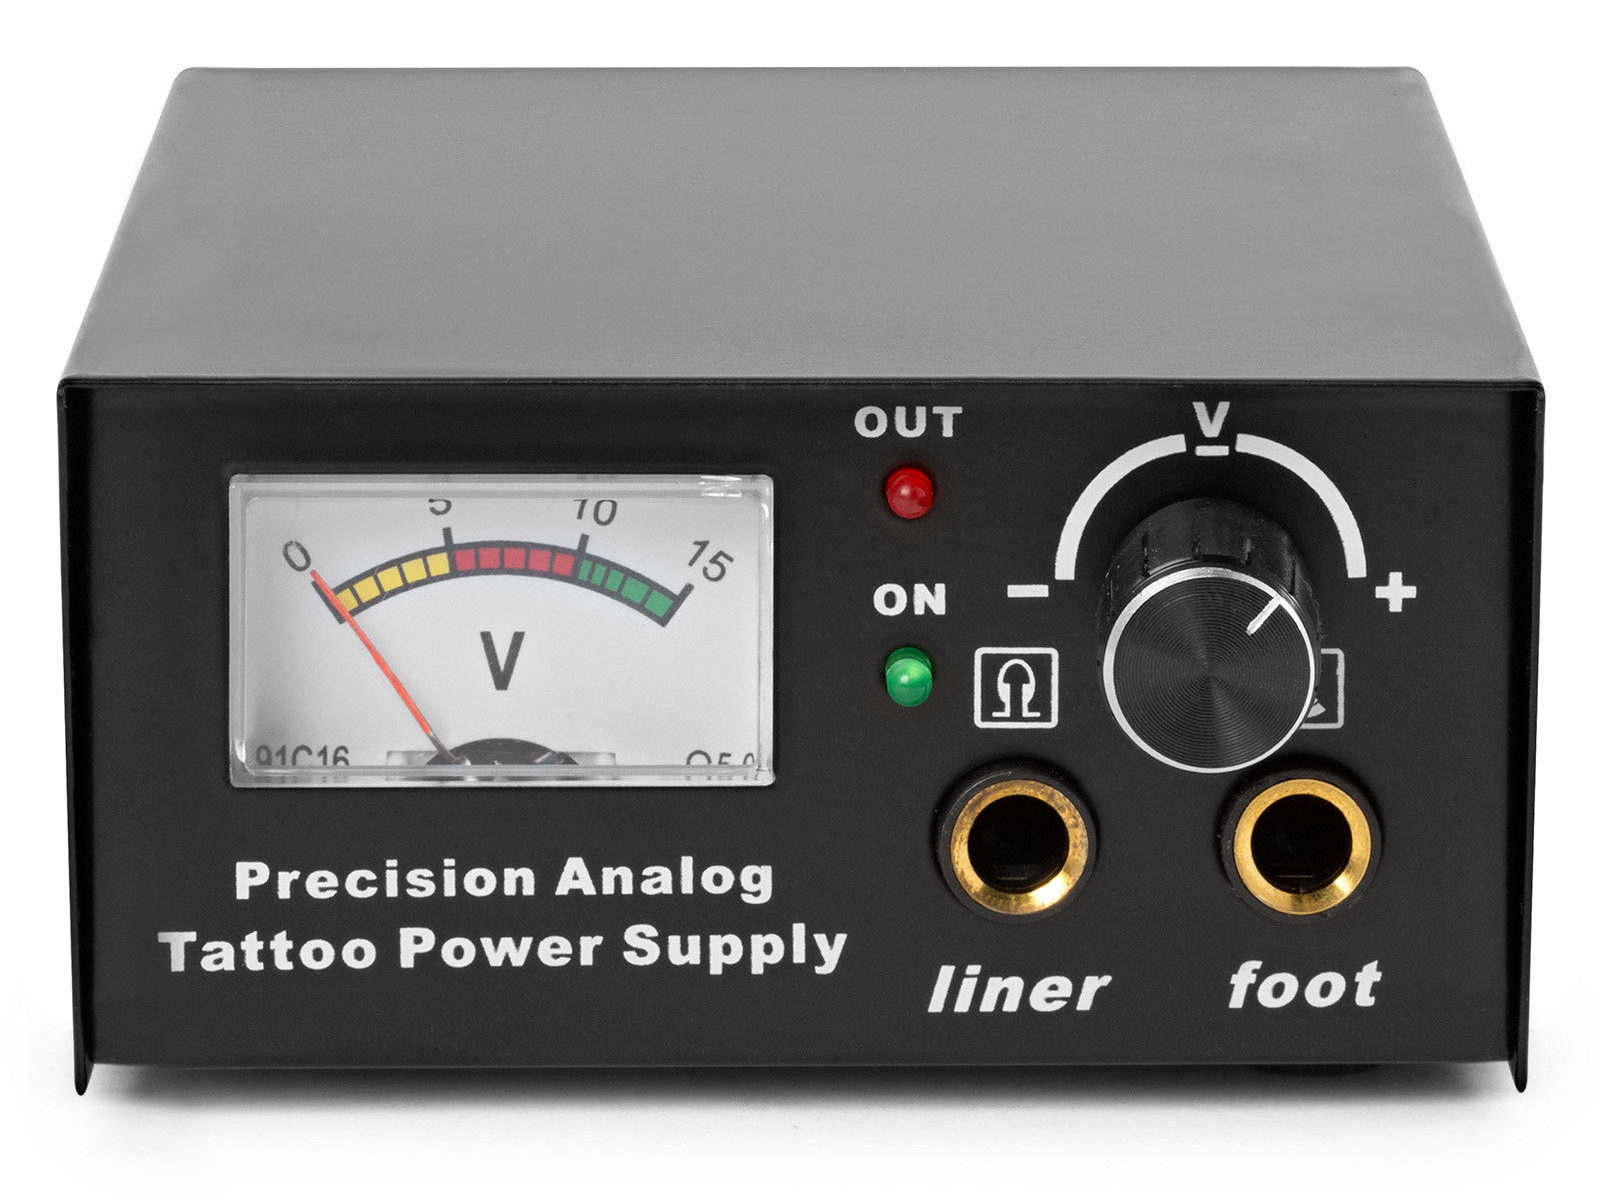 Porket Indicate Tattoo Power Supply Wiring Diagram | Manual E-Books - Tattoo Power Supply Wiring Diagram